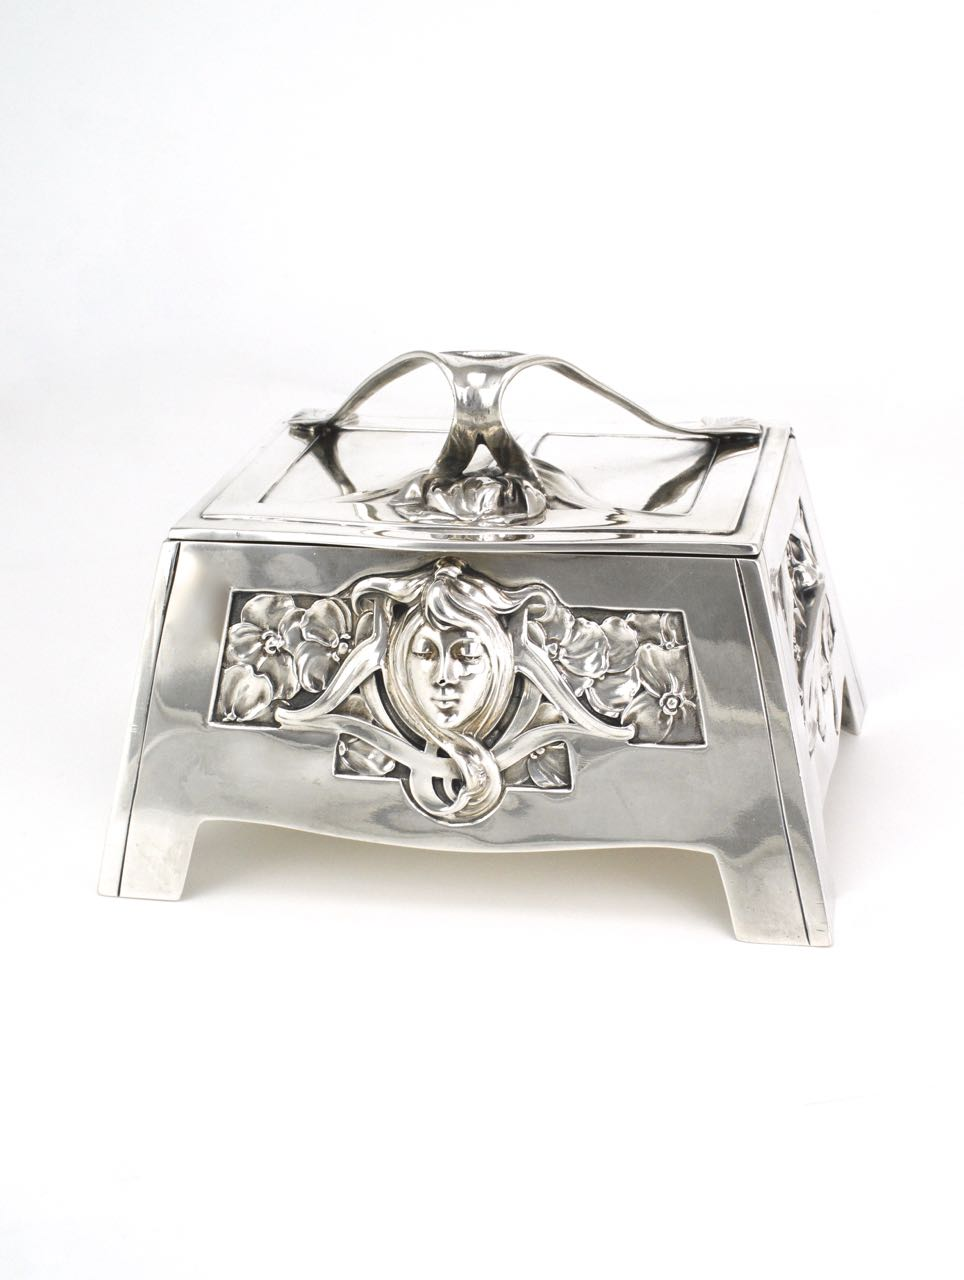 Art Nouveau Solid Silver Sugar Box 1900 Germany - Carl Stock for Bruckmann and Söhne